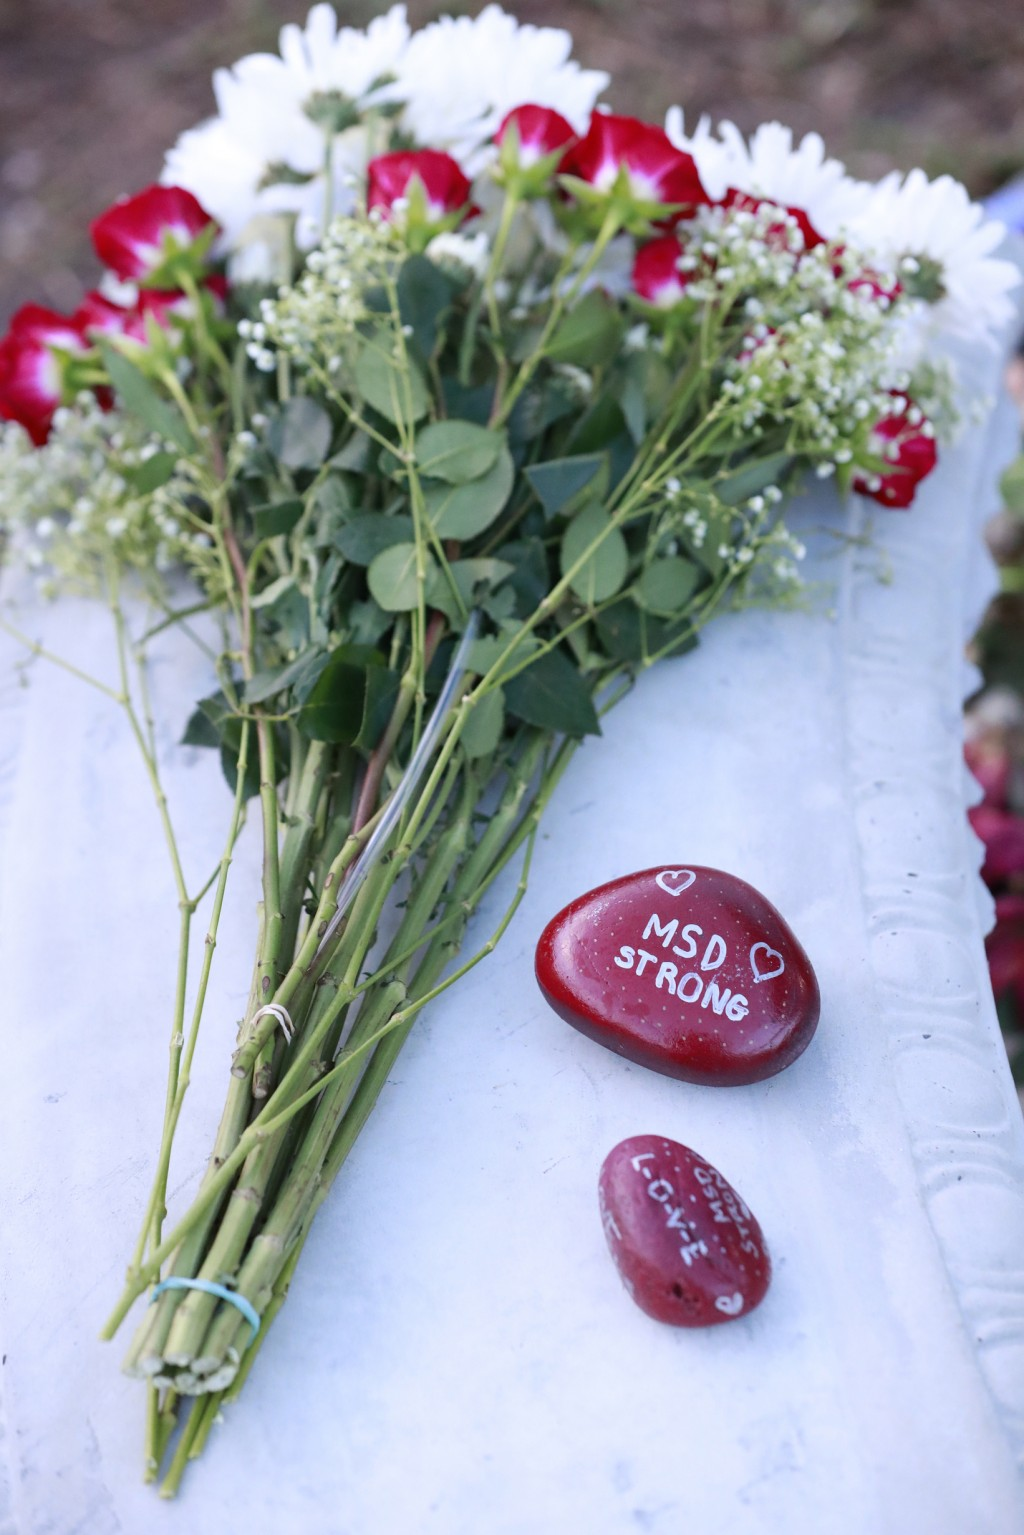 Flowers and stones are shown at a memorial outside Marjory Stoneman Douglas High School during the one-year anniversary of the school shooting, Thursd...